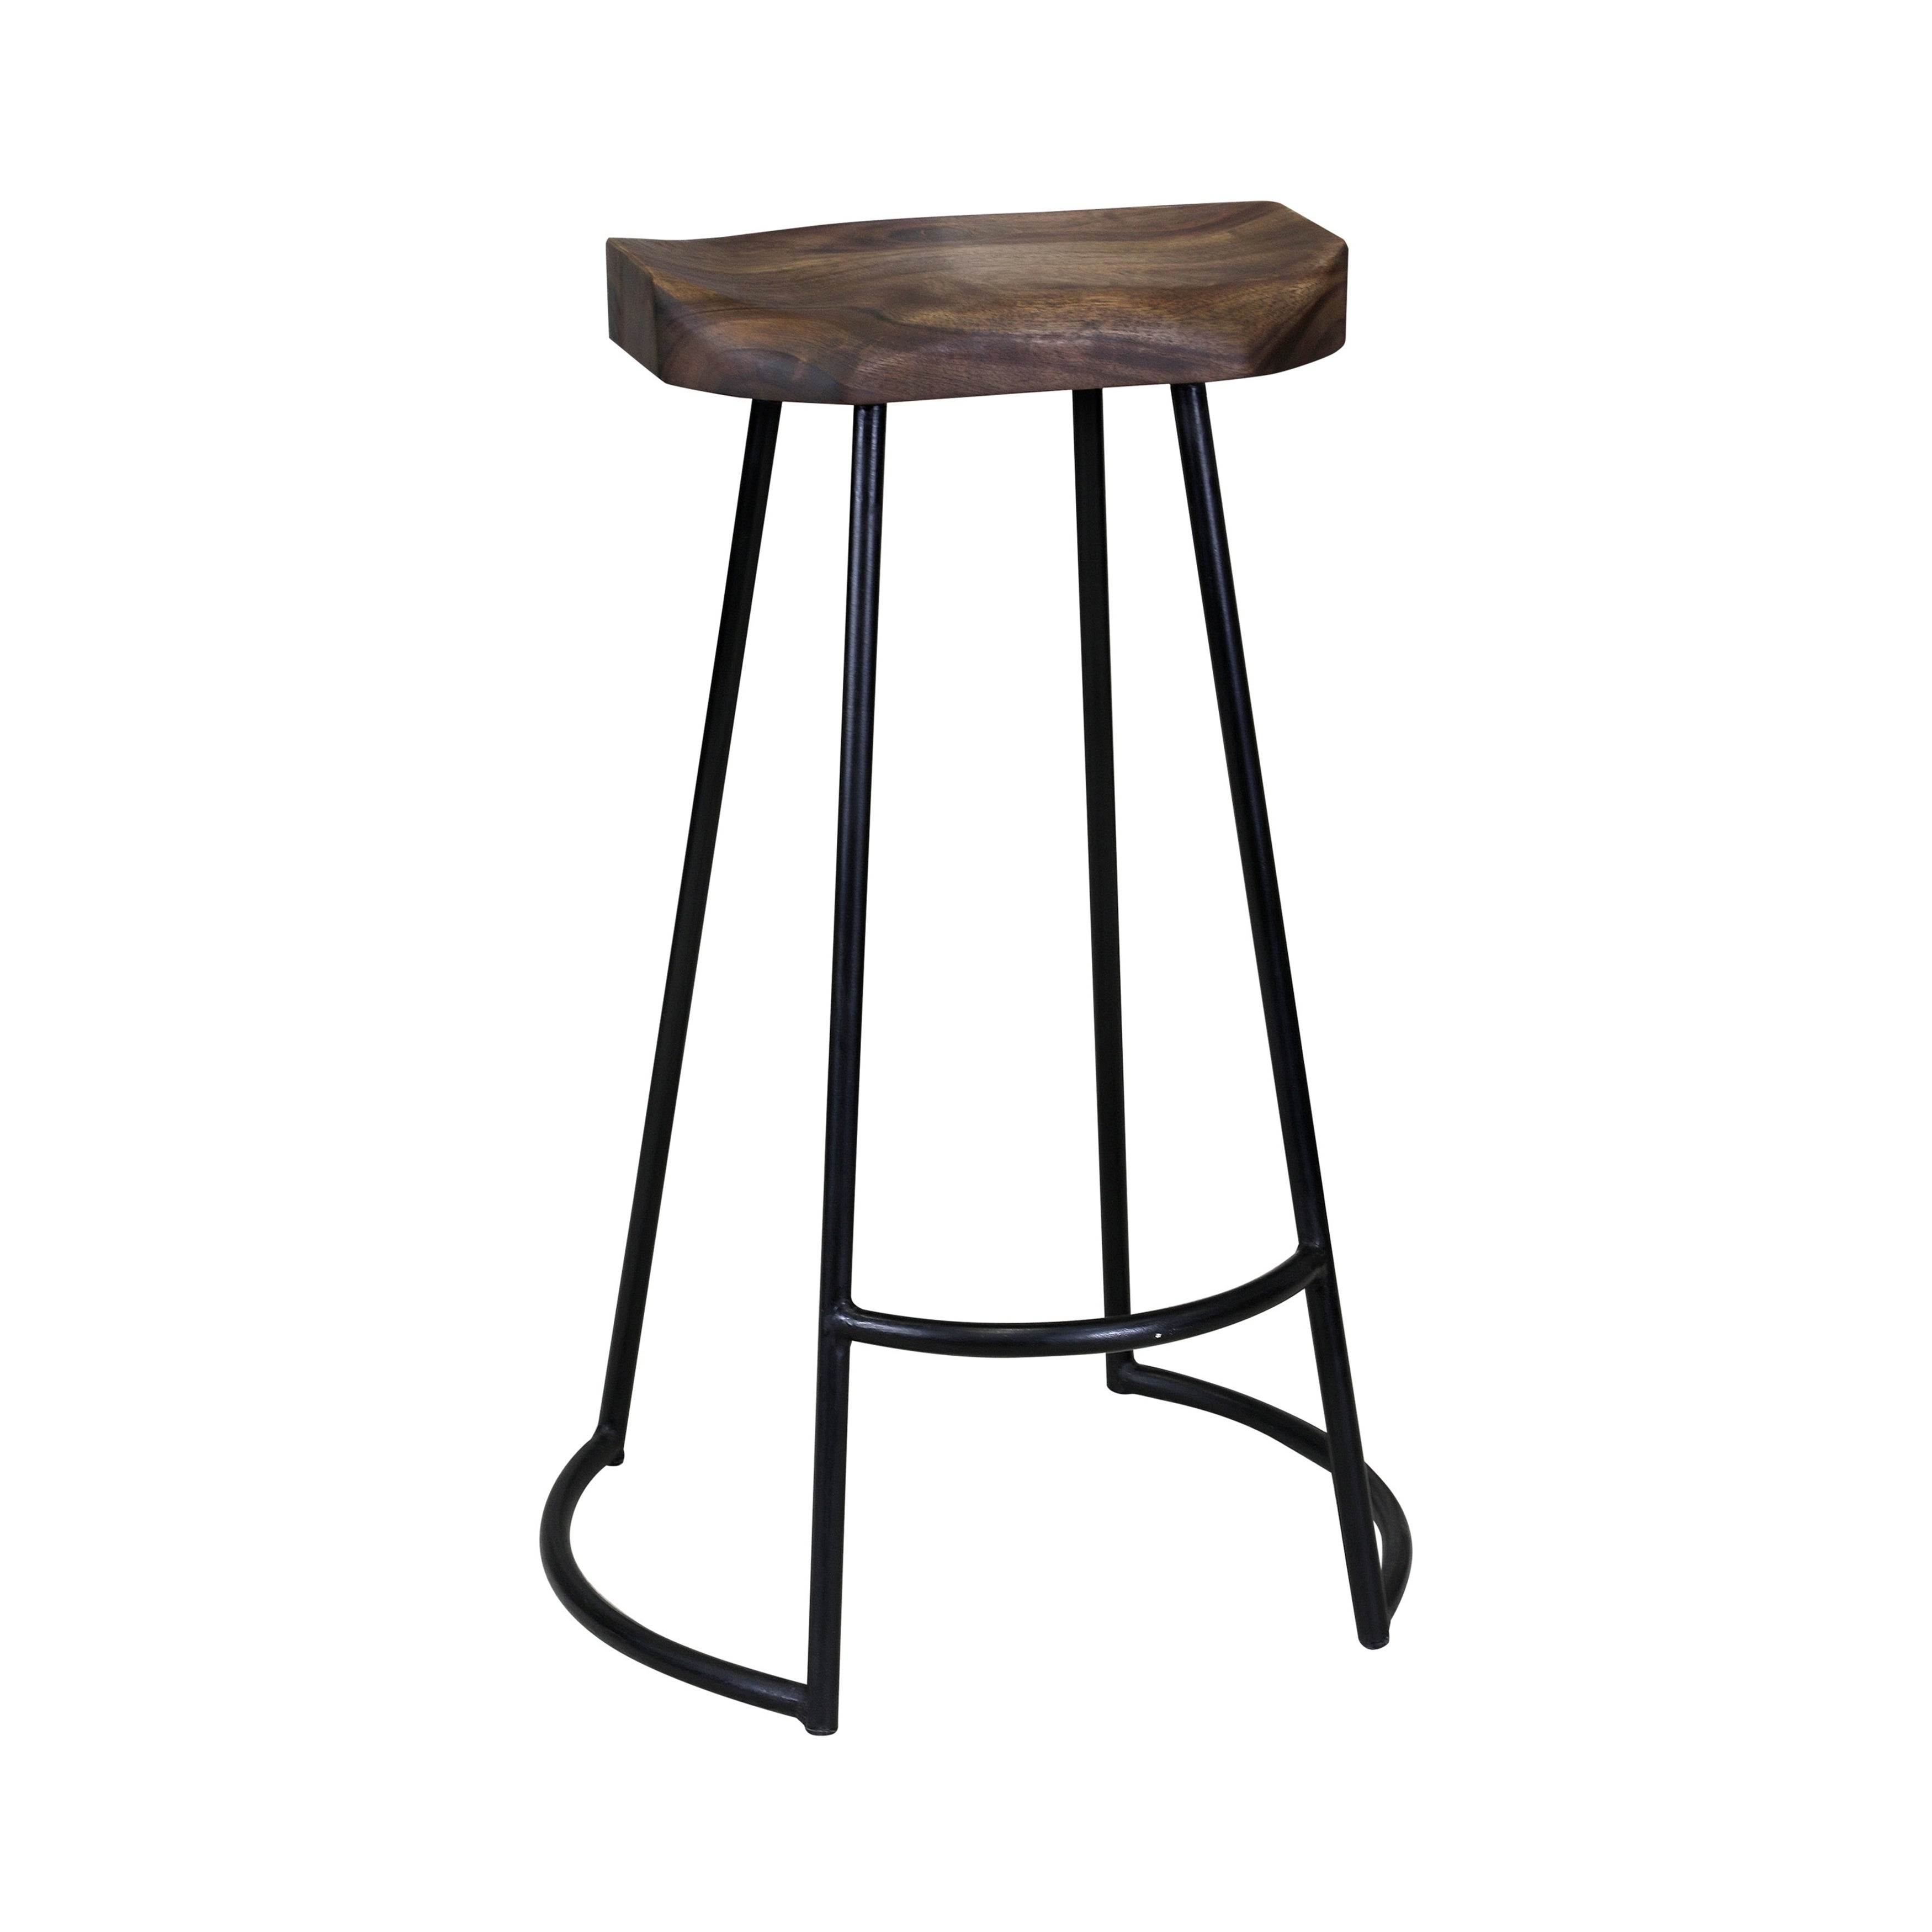 Swell Carbon Loft Jannes Sculpted Solid Wood Seat Bar Stool With Wrought Iron Base With Foot Rest Caraccident5 Cool Chair Designs And Ideas Caraccident5Info